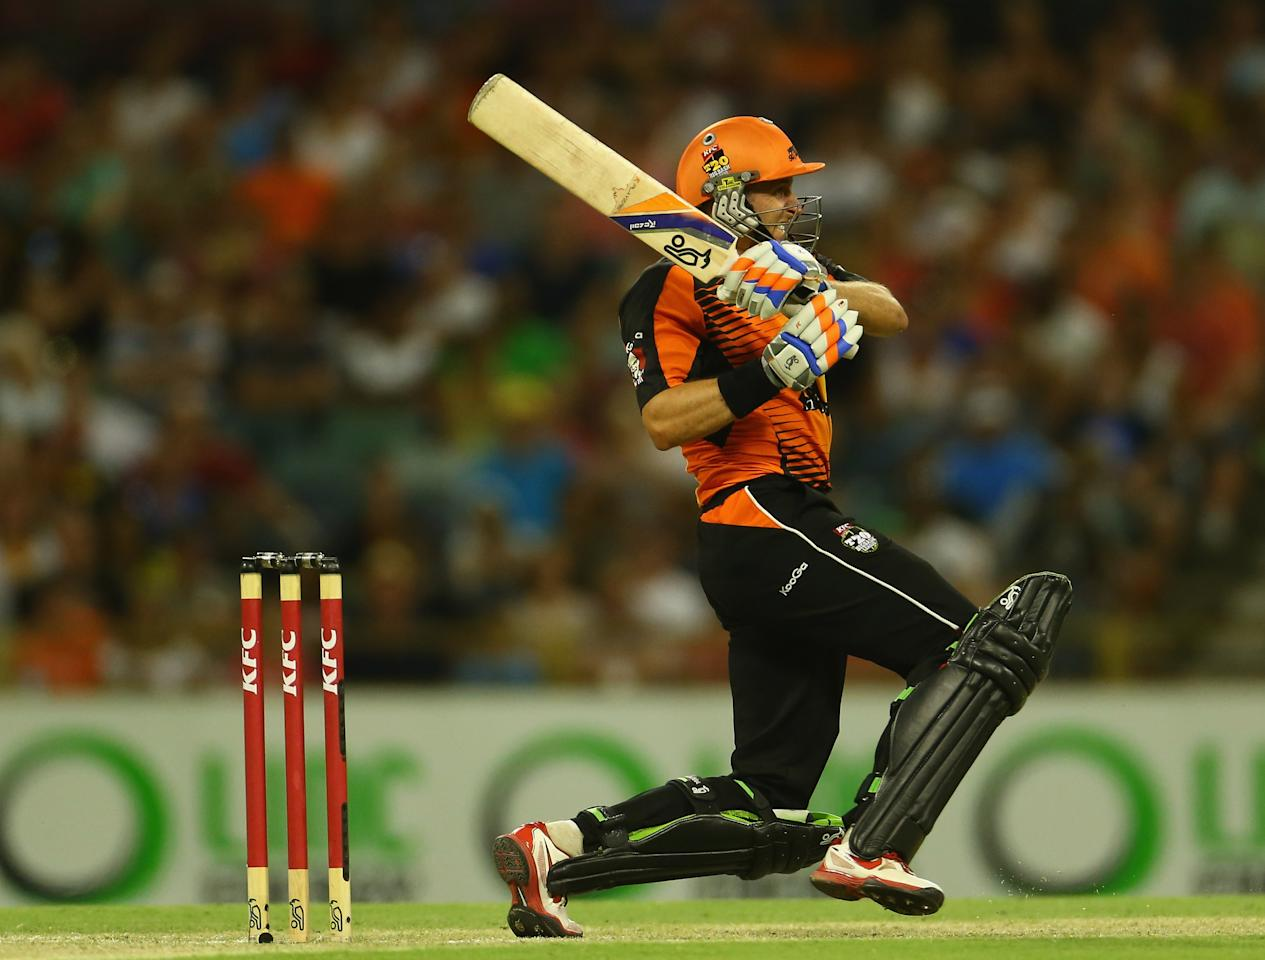 PERTH, AUSTRALIA - JANUARY 19:  Michael Hussey of the Scorchers bats during the Big Bash League final match between the Perth Scorchers and the Brisbane Heat at WACA on January 19, 2013 in Perth, Australia.  (Photo by Robert Cianflone/Getty Images)